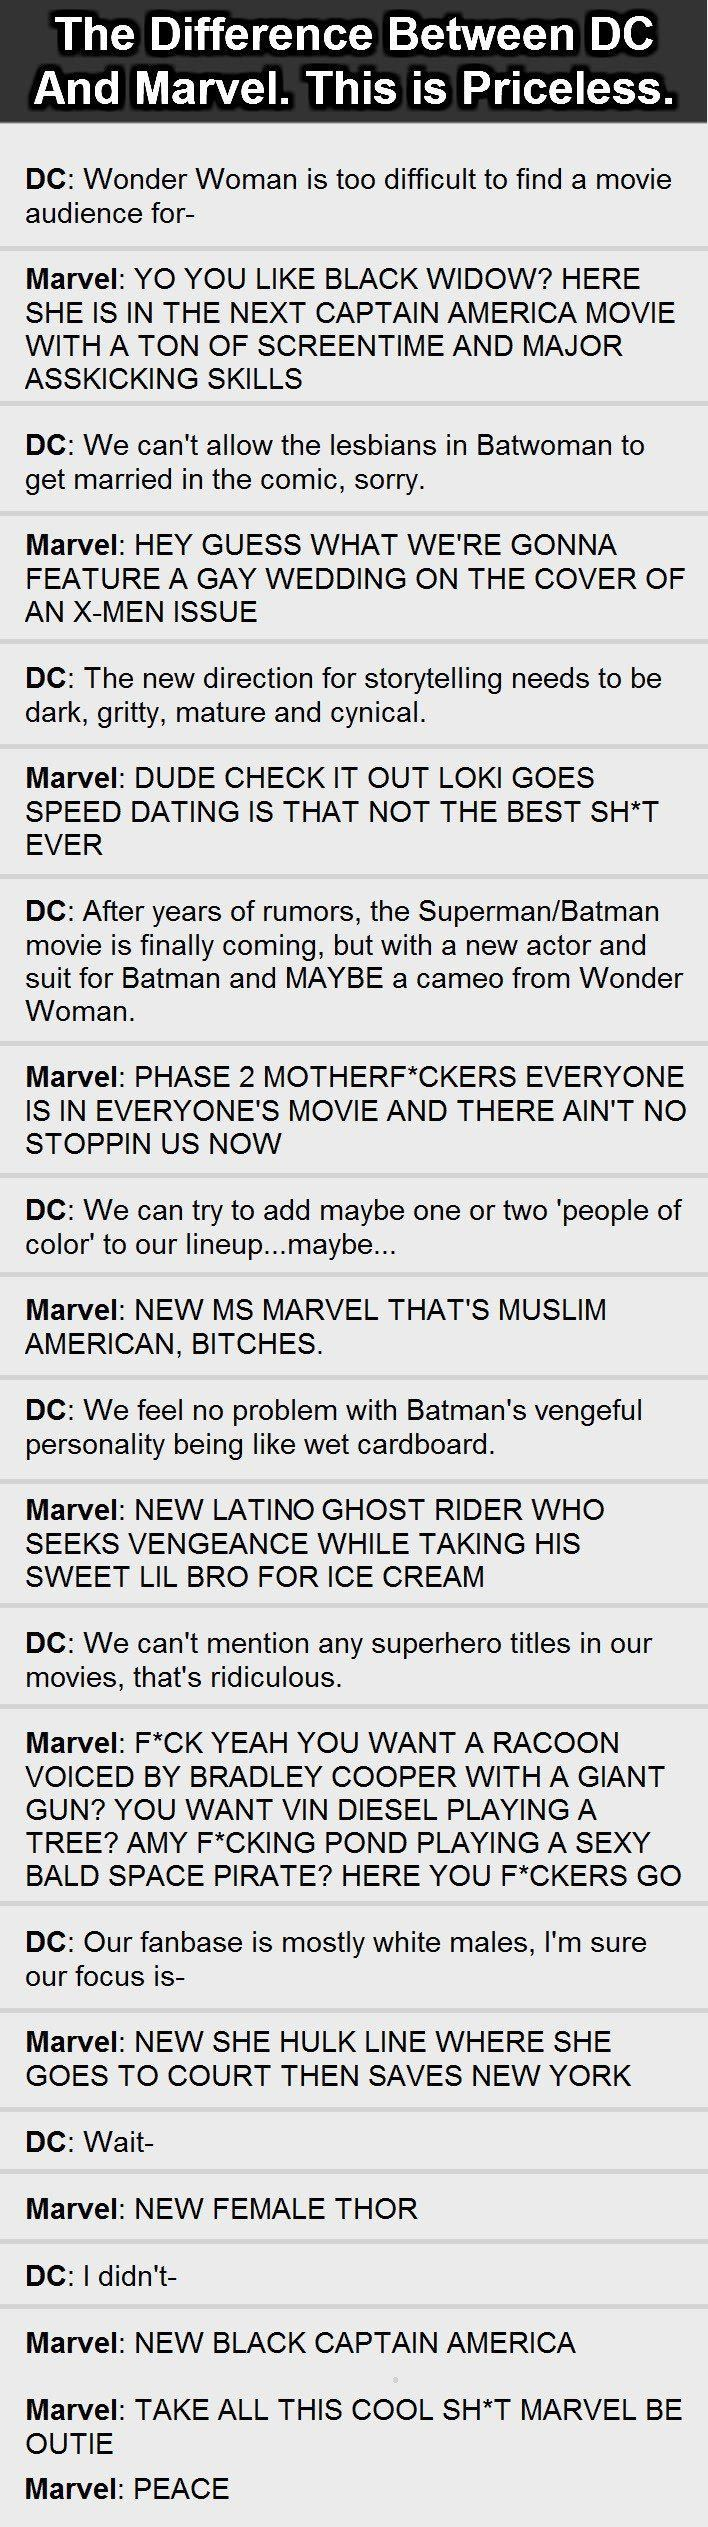 The Difference Between DC and Marvel http://geekxgirls.com/article.php?ID=2971